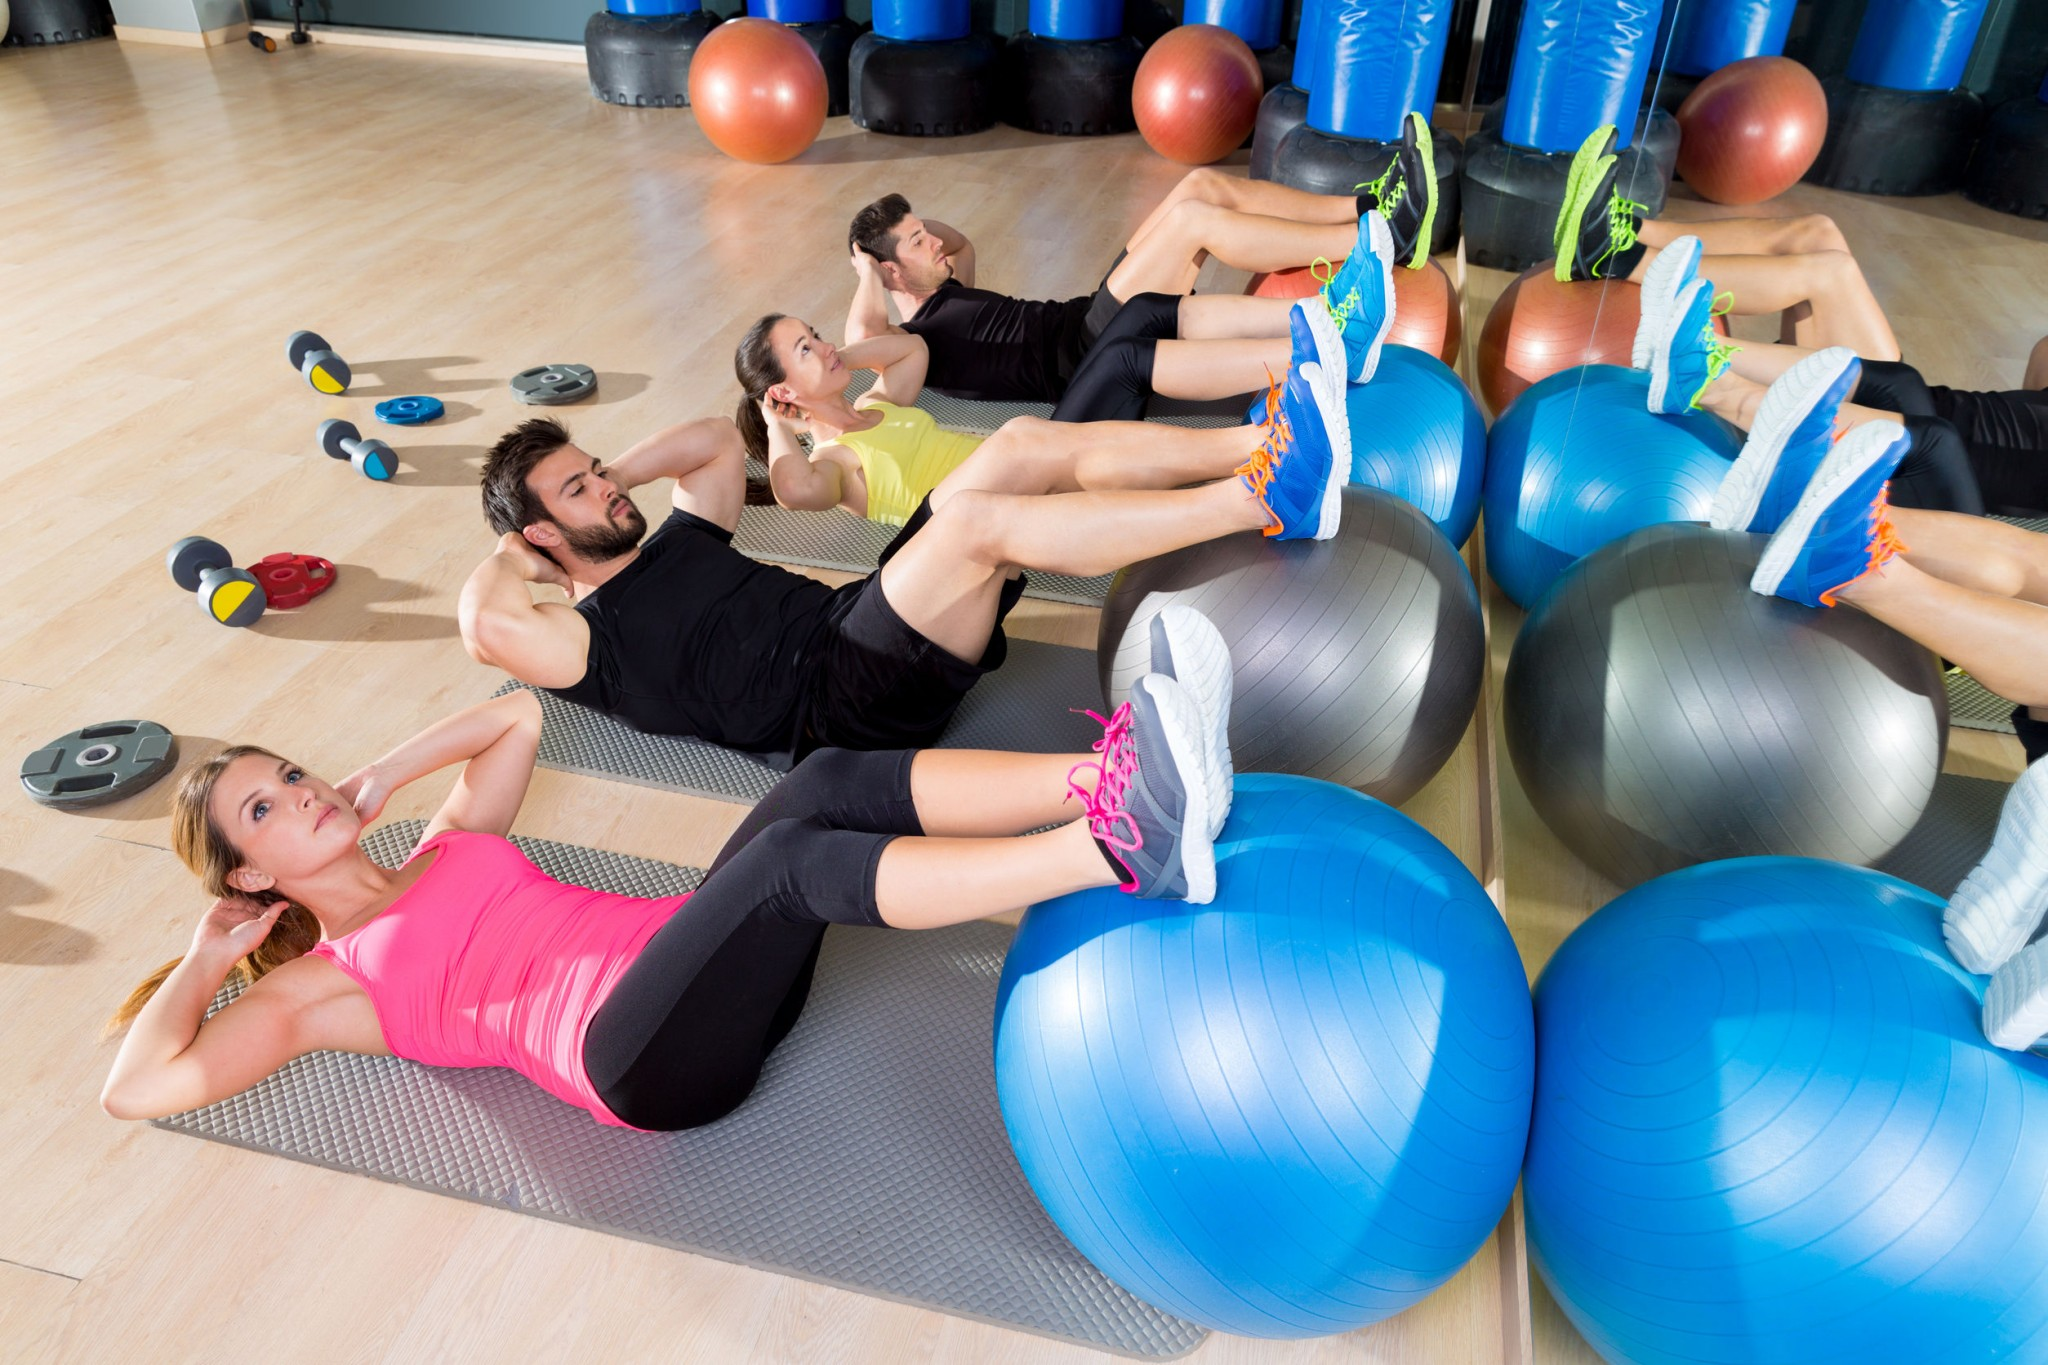 fitball-crunch-training-group-core-fitness